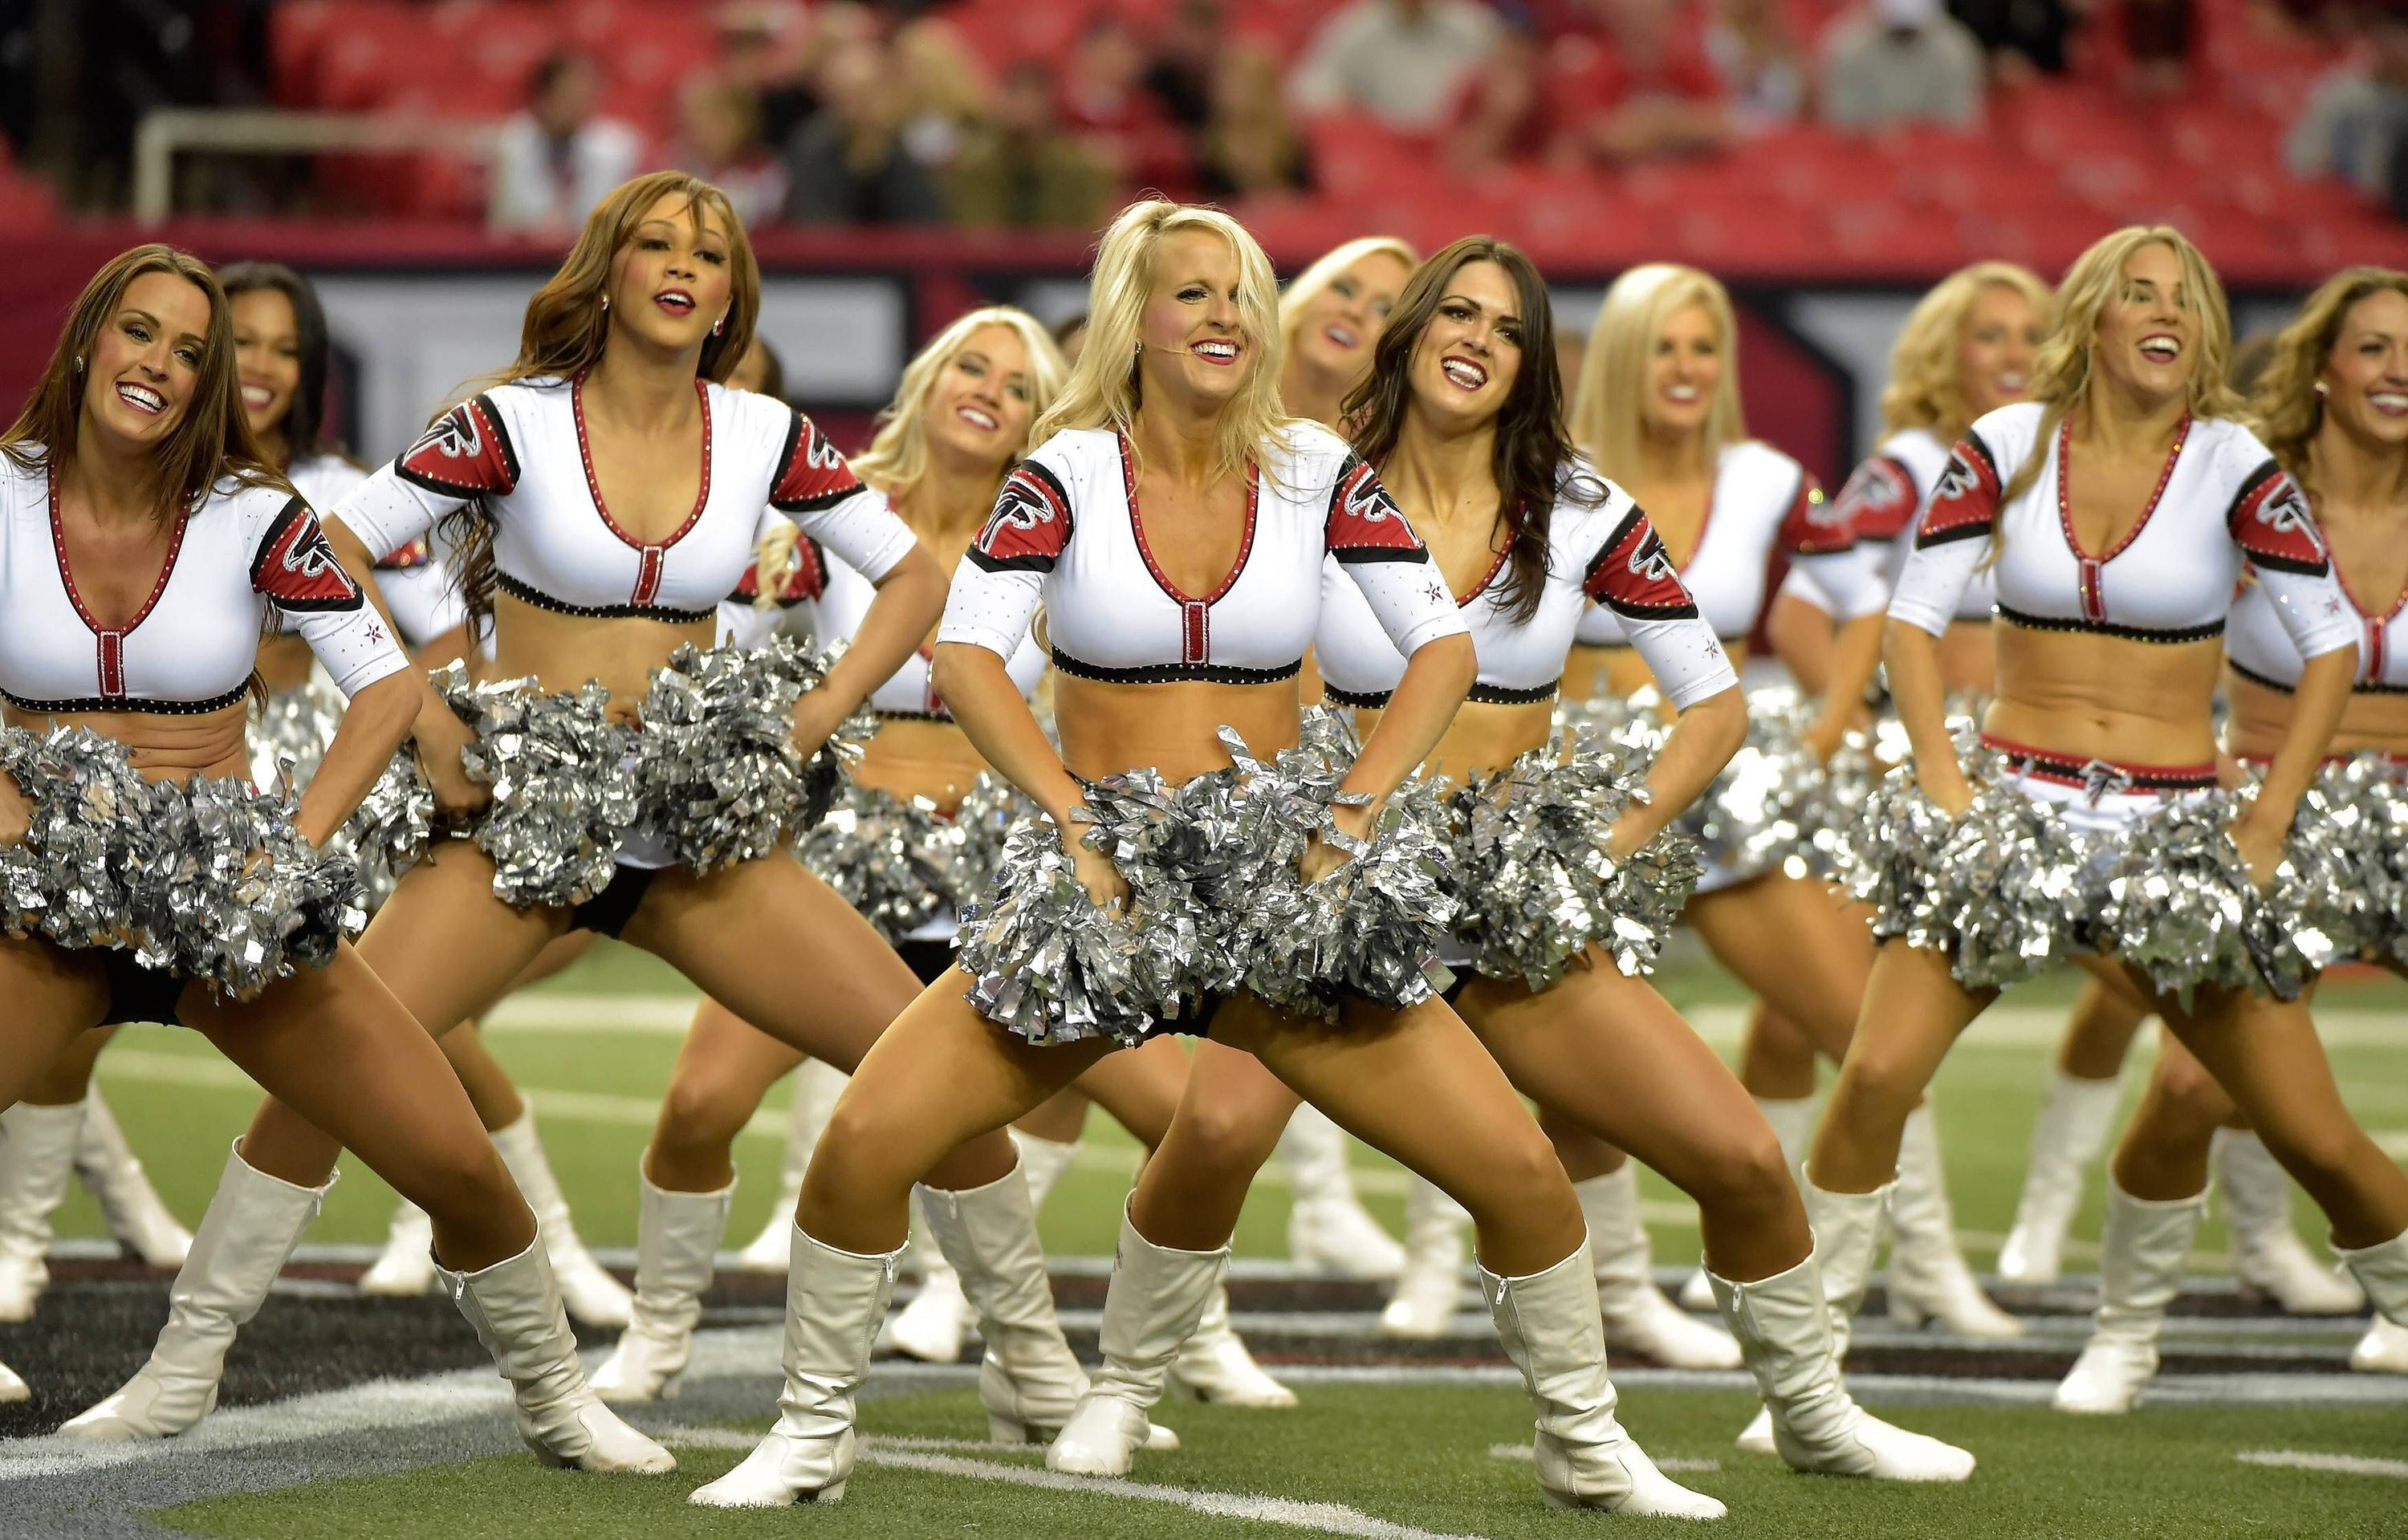 Bild zu Arizona Cardinals, Cheerleader, NFL